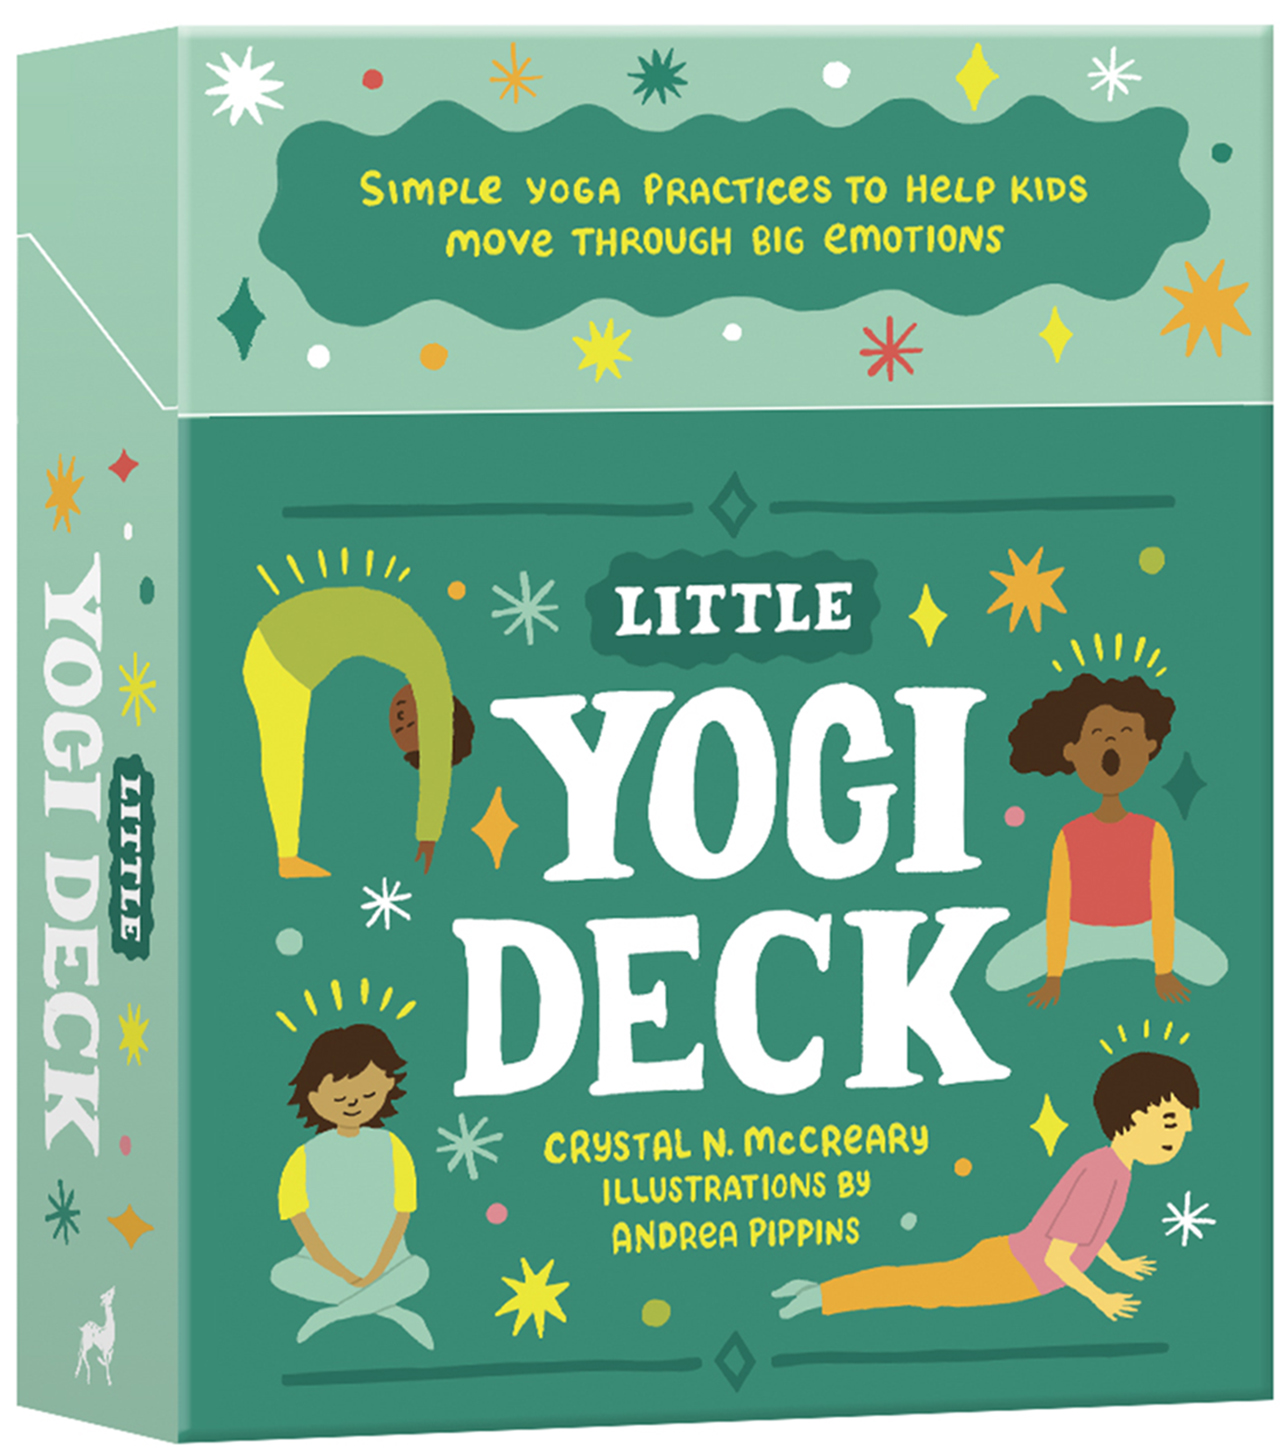 The Little Yogi Deck: Simple Yoga Practices to Help Kids Move Through Big Emotions